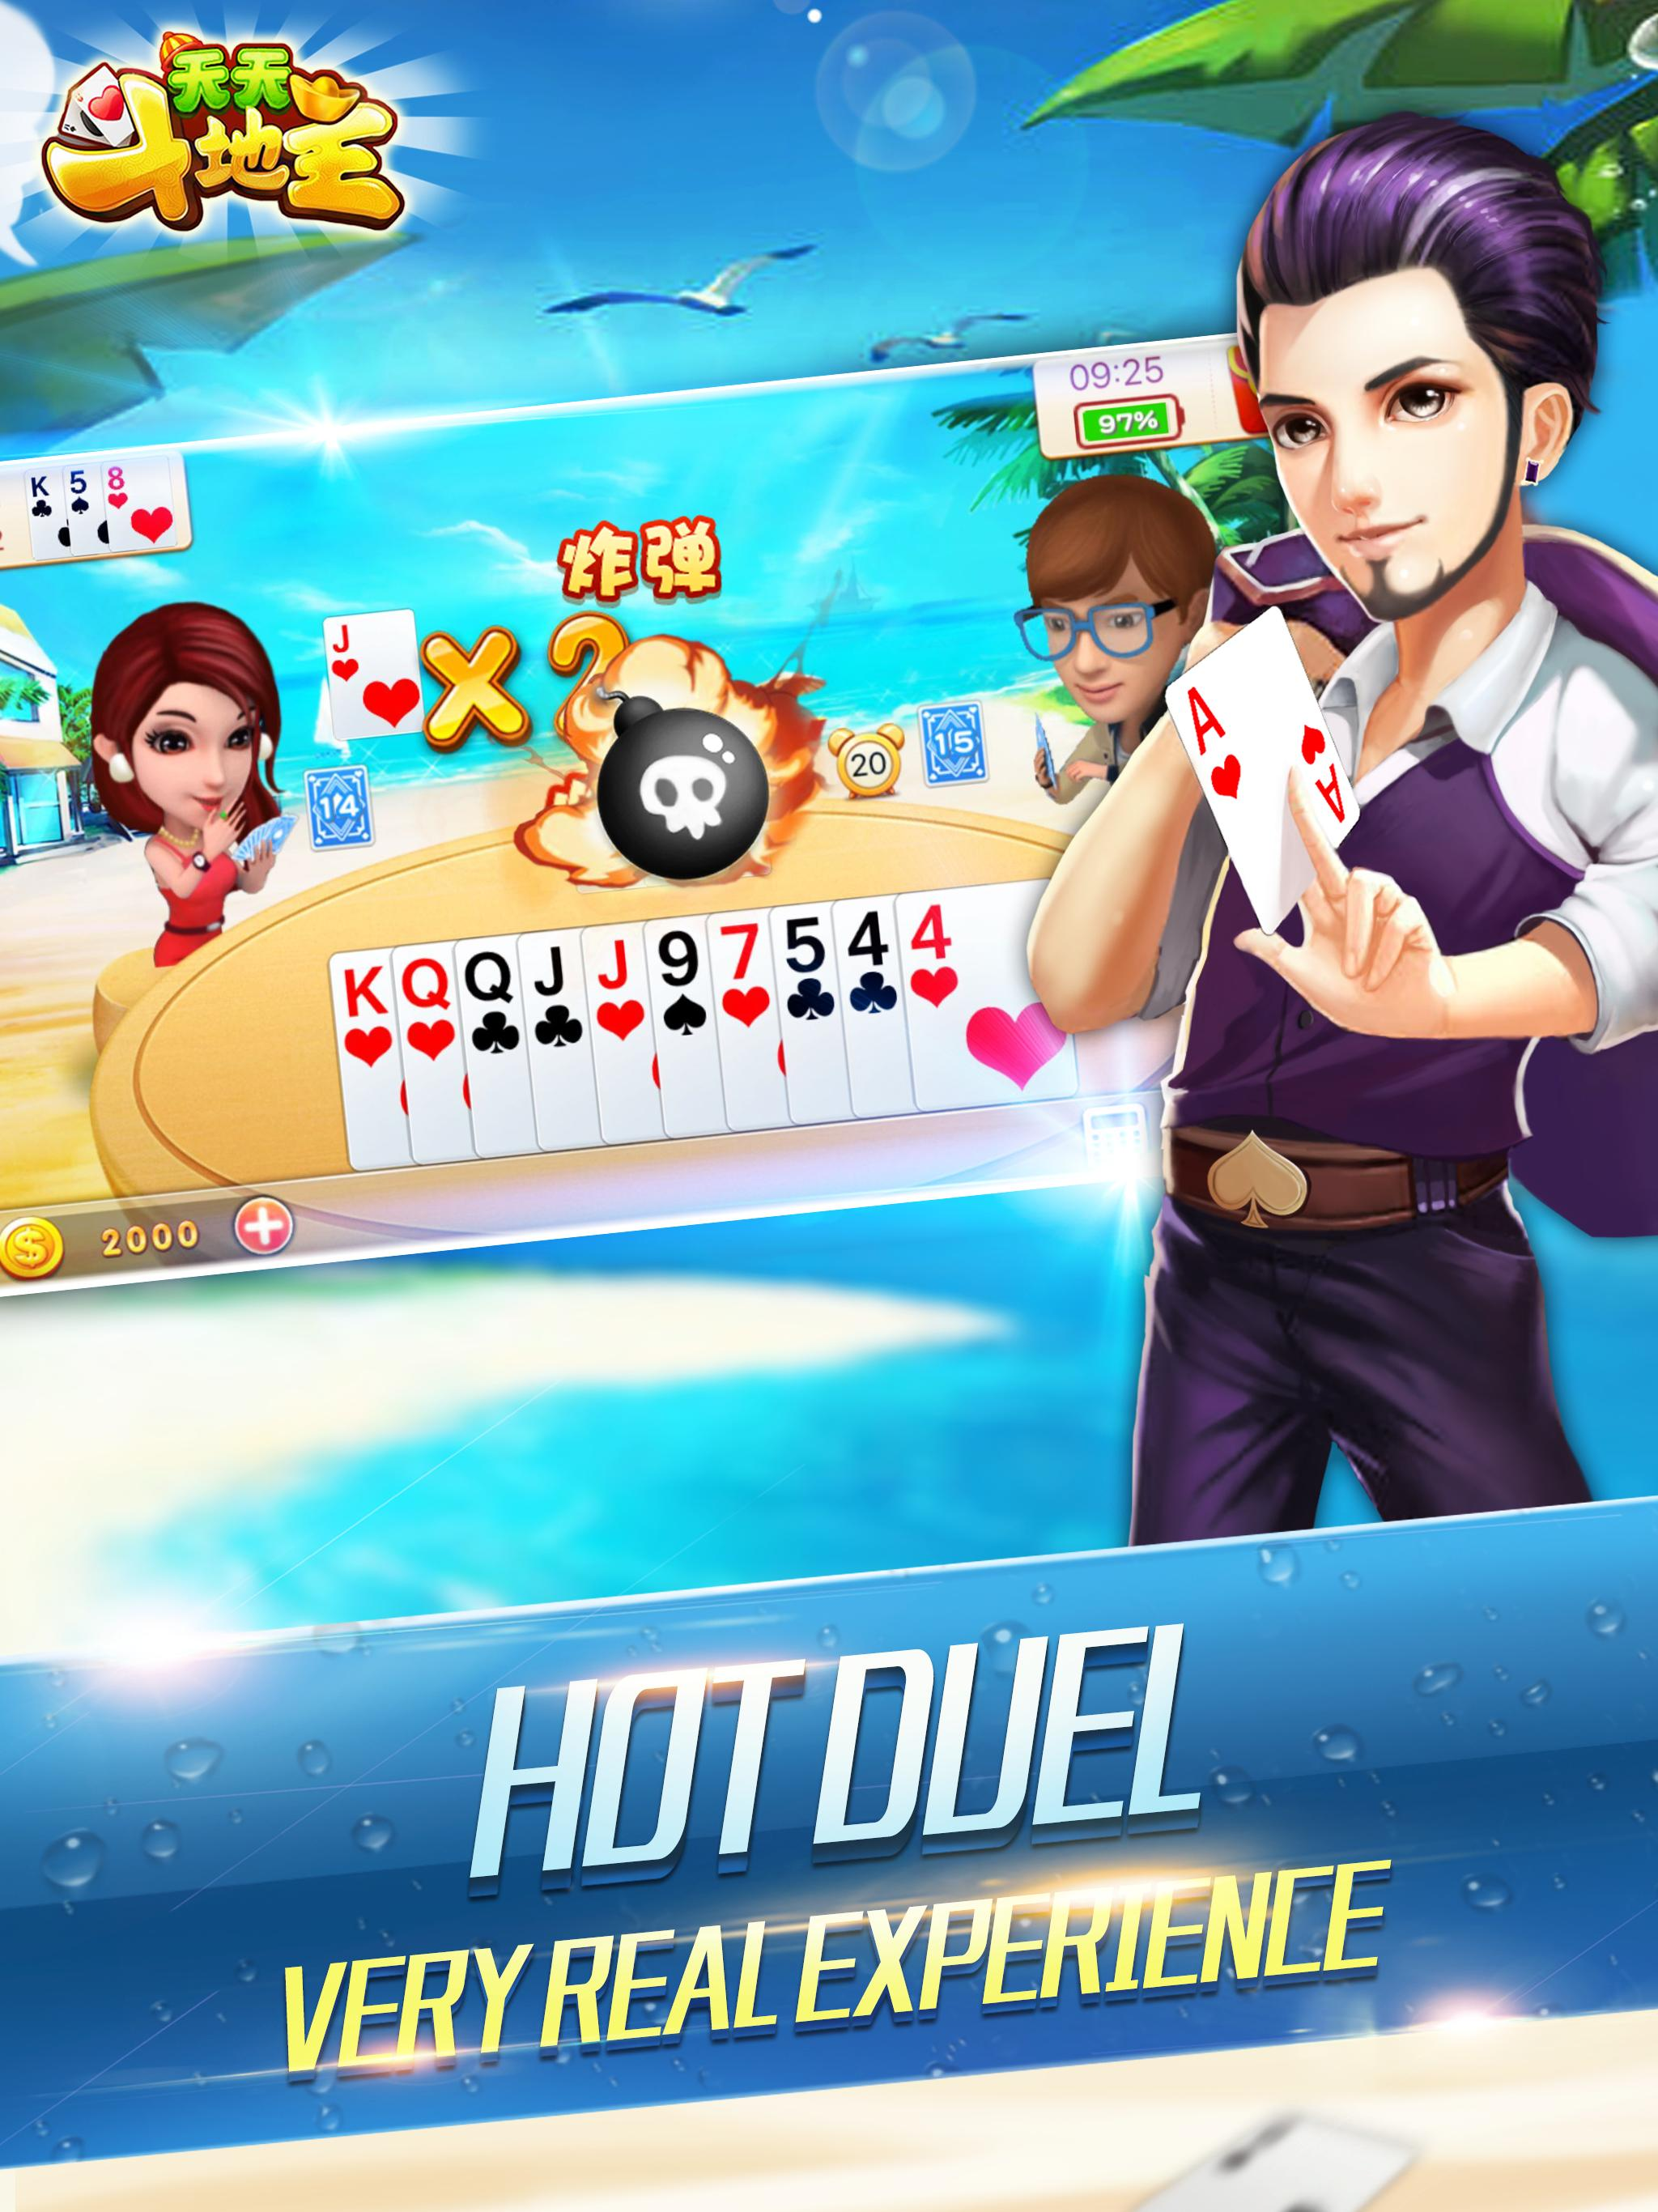 landlords-casino game and card game 1.0 Screenshot 8